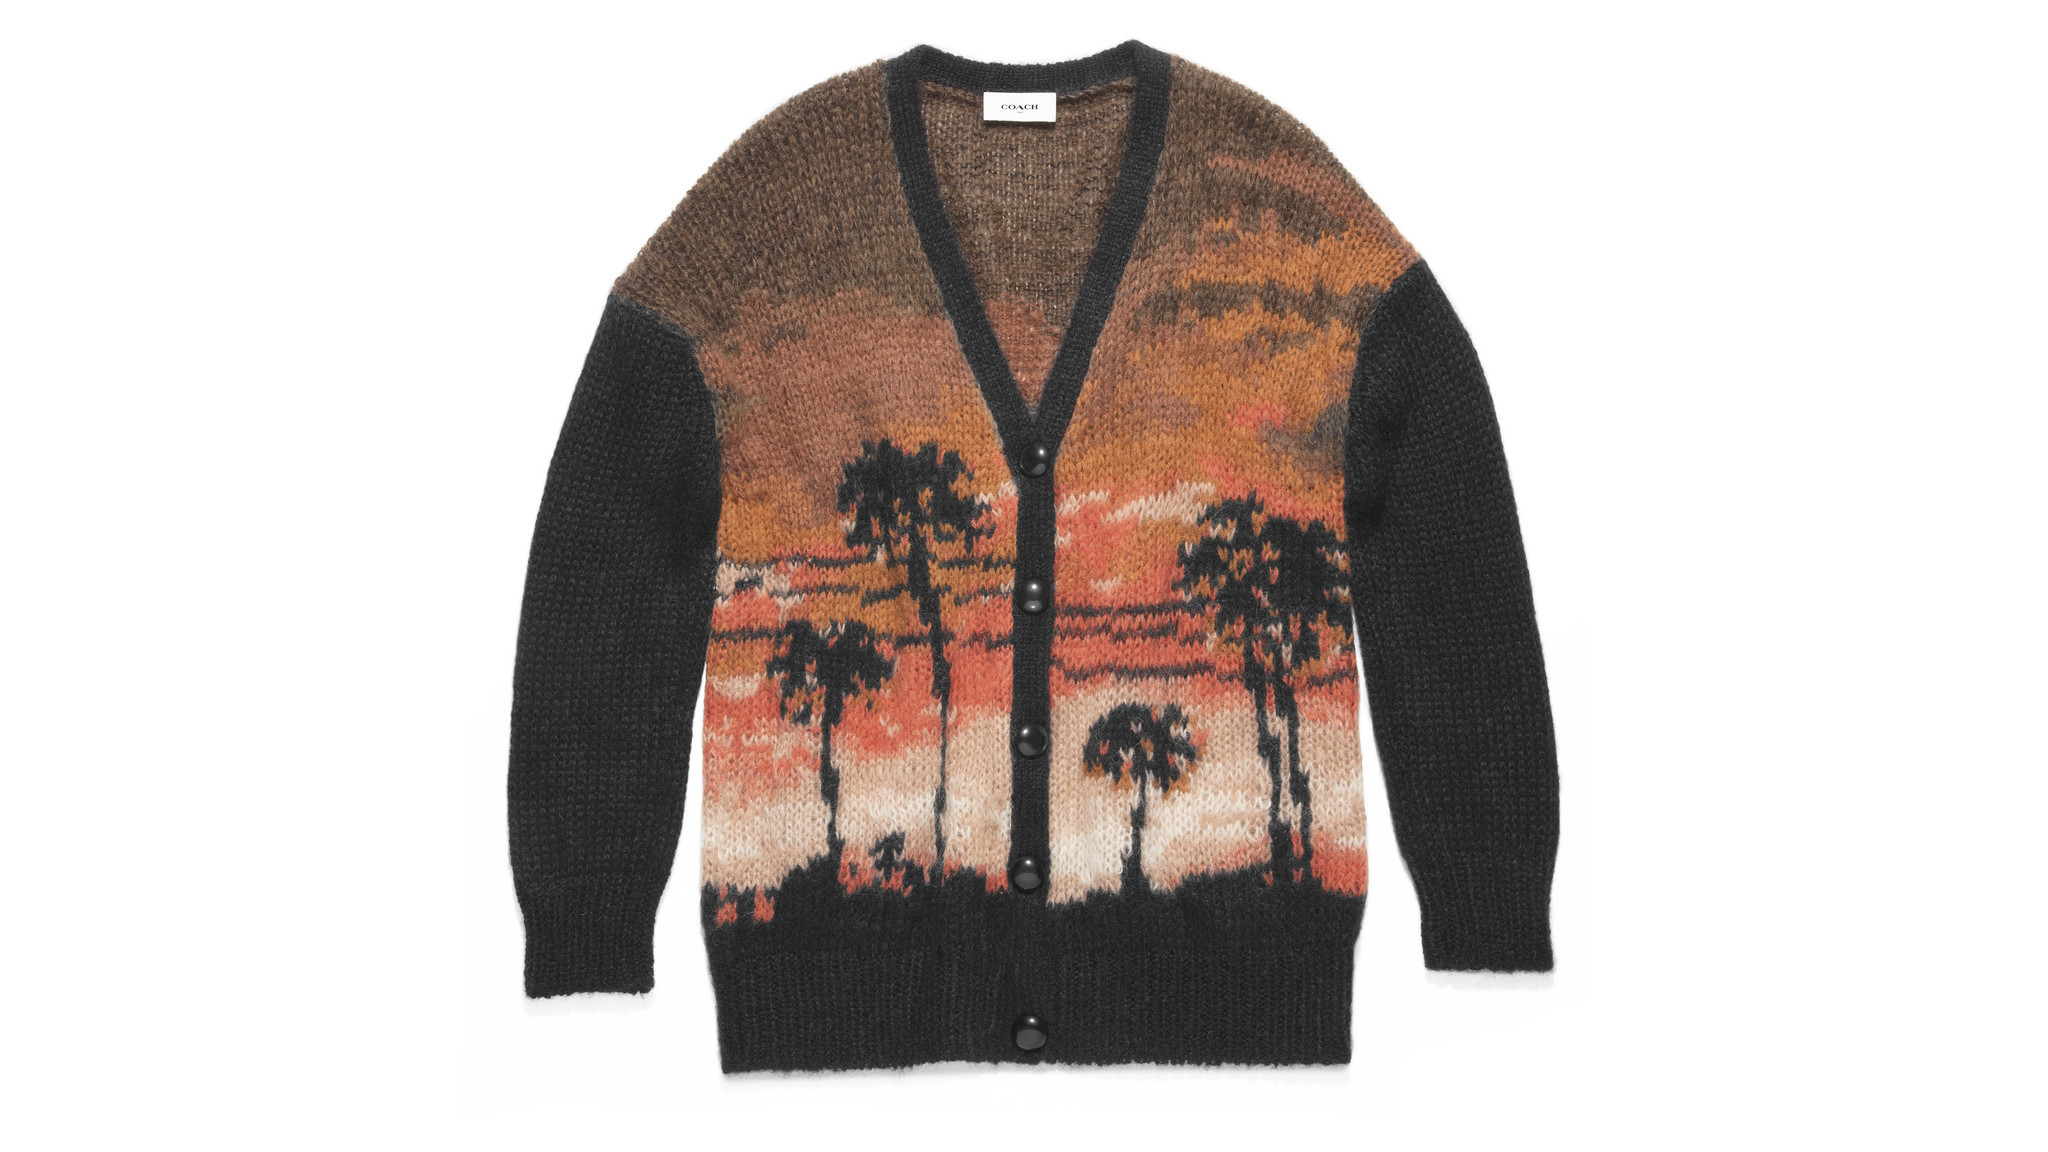 Coach women's mohair-blend Palm Tree Intarsia Cardigan $550 at Coach in Beverly Hills, coach.com